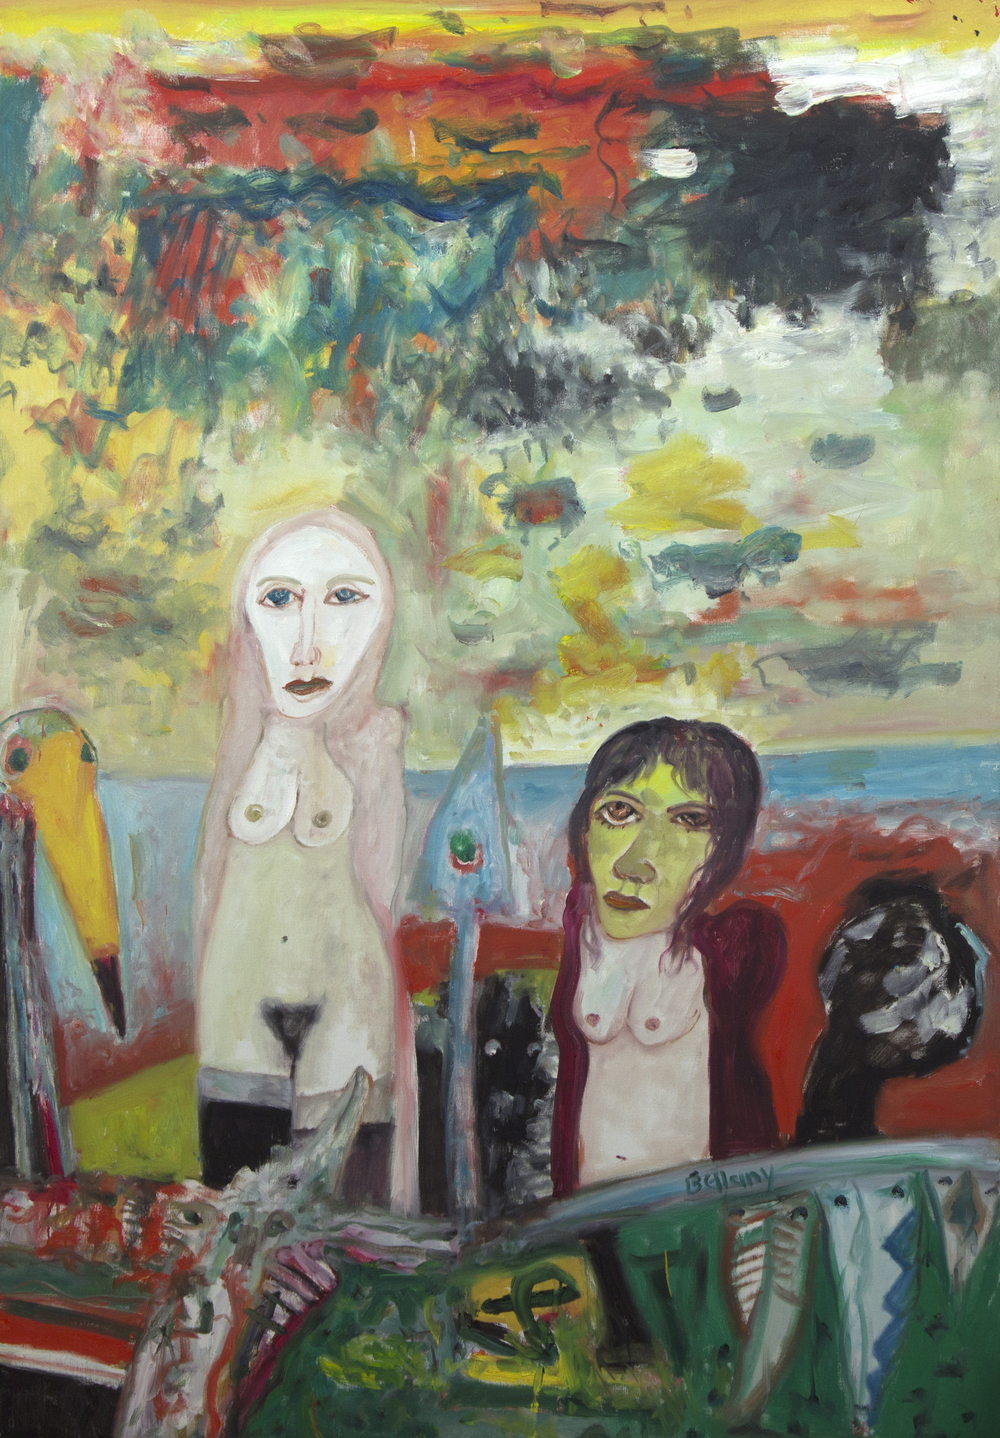 John Bellany CBE. RA. Tranquility, Oil on canvas, 173x122cm.